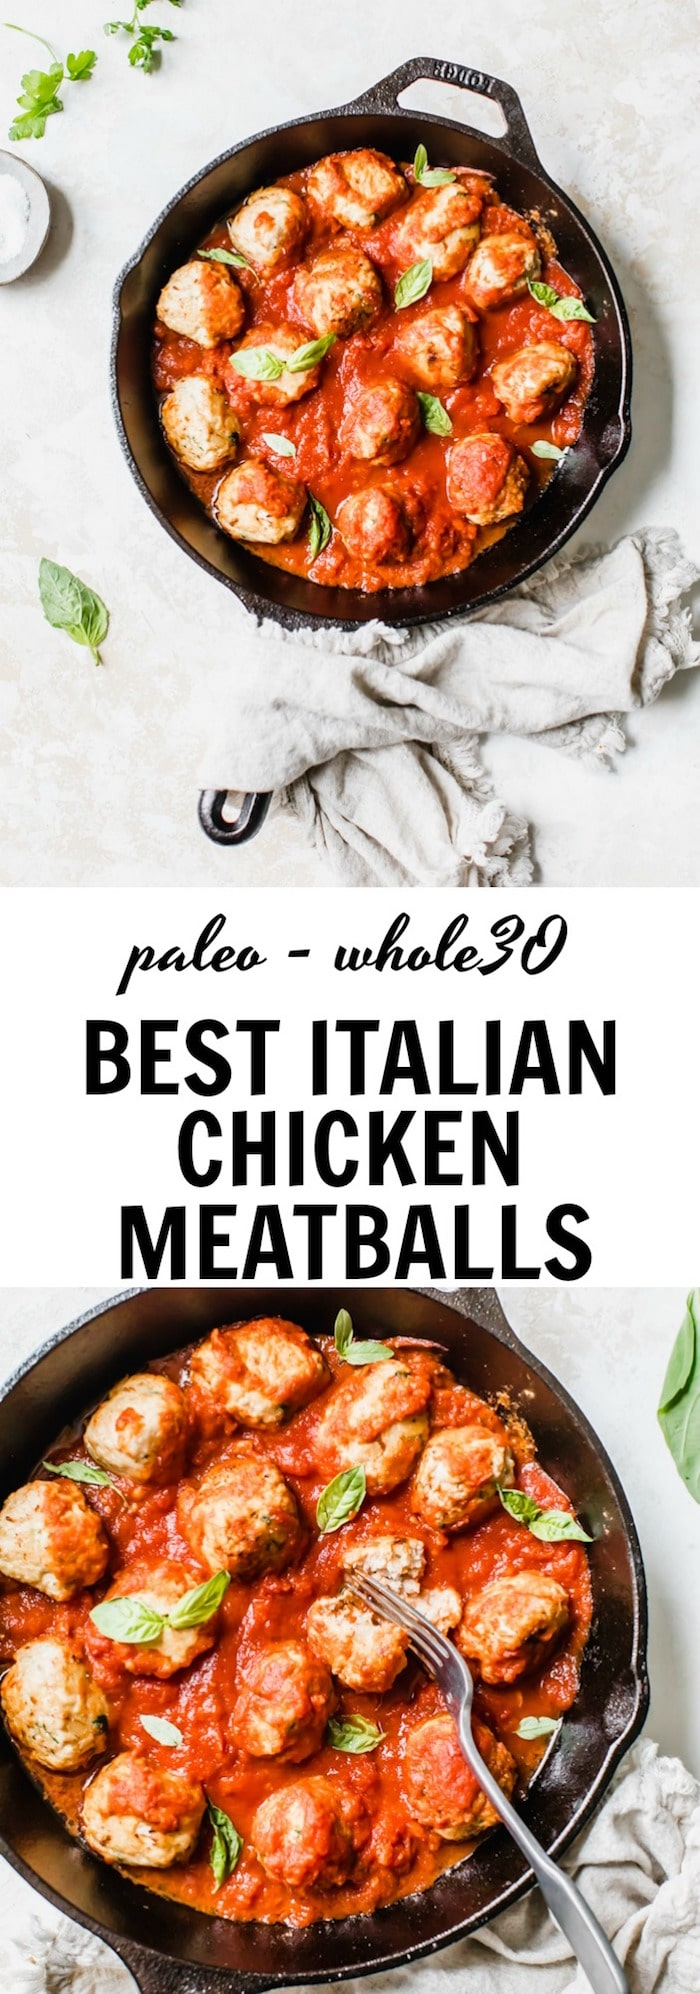 the BEST Italian Chicken Meatballs that just so happen to be #paleo and #whole30 friendly | thealmondeater.com